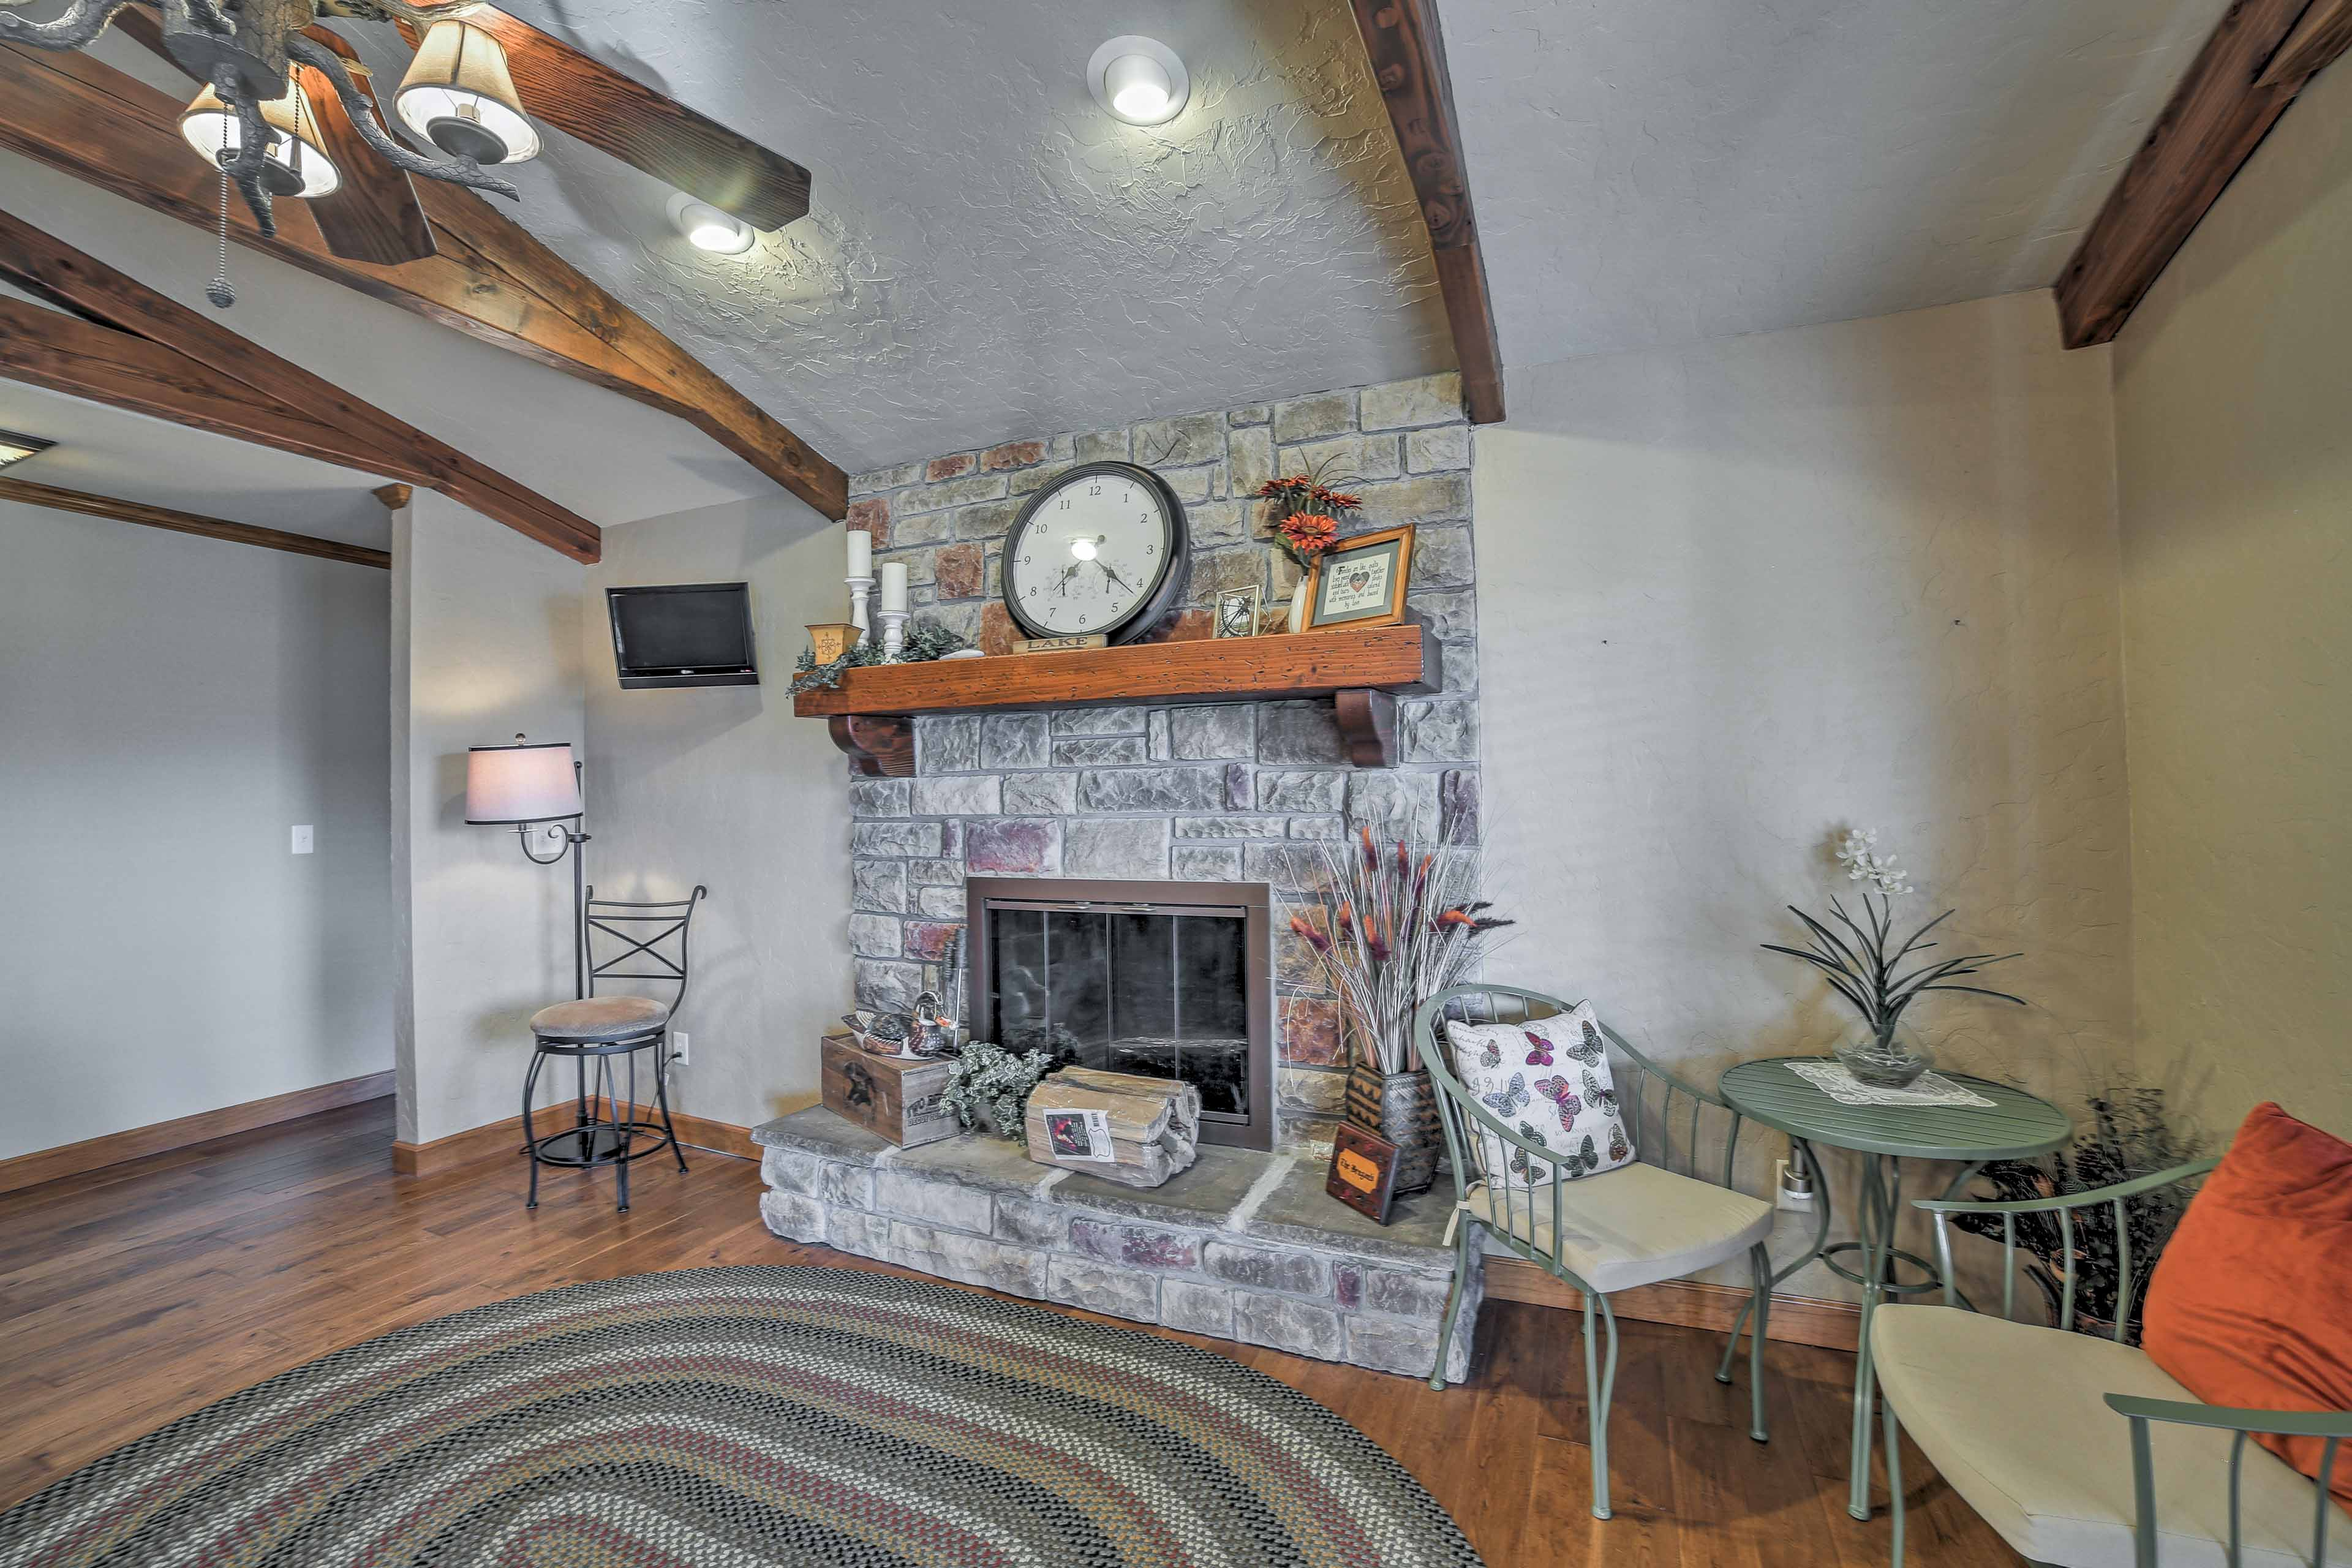 Relax after dinner in the cozy family room by the stone-encased fireplace.